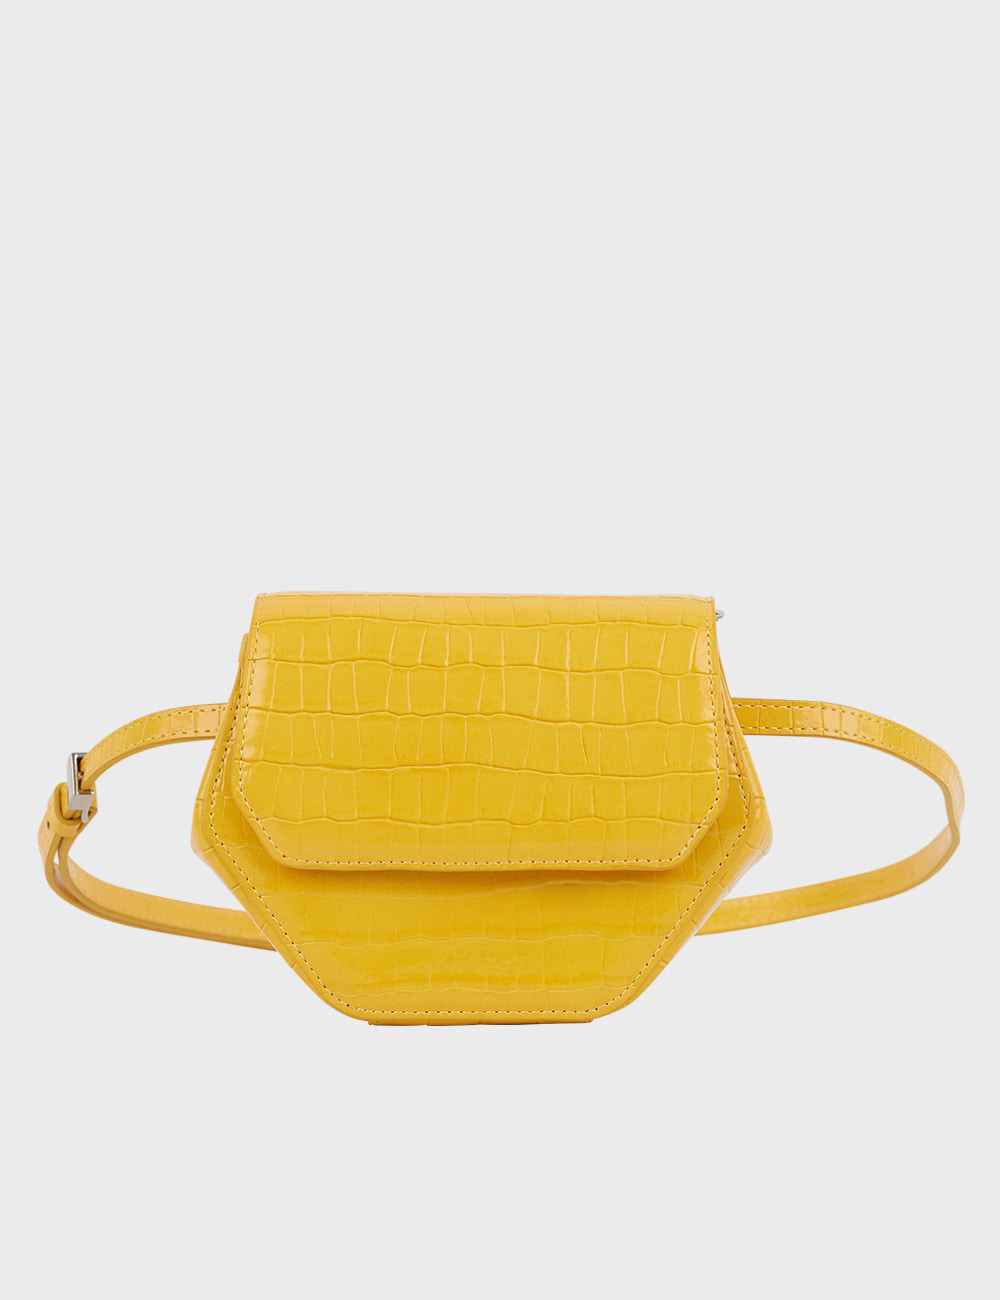 MAISON246,[메탈체인증정] 246 MAGOT SMALL CROCODILE PENNY BAG - YELLOW,246